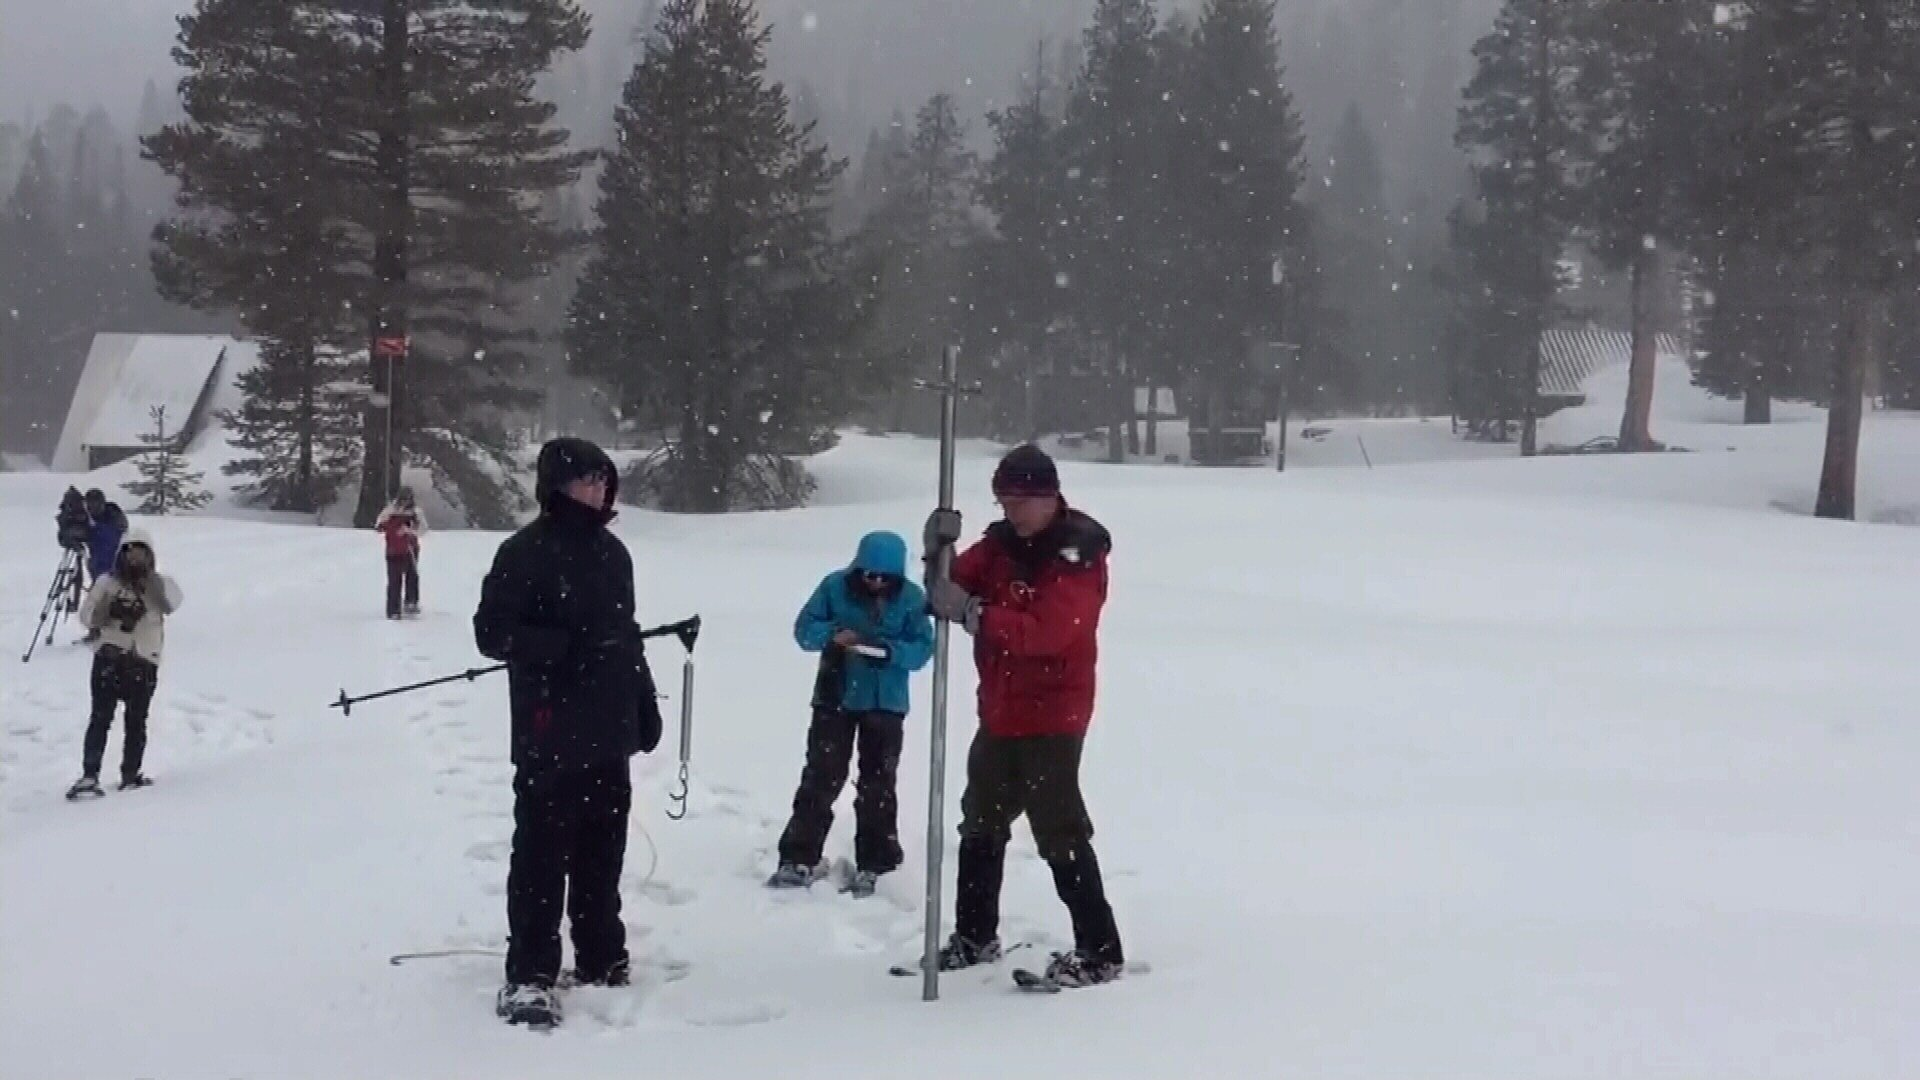 State water managers measure the snowpack near Lake Tahoe. (KCRA photo)